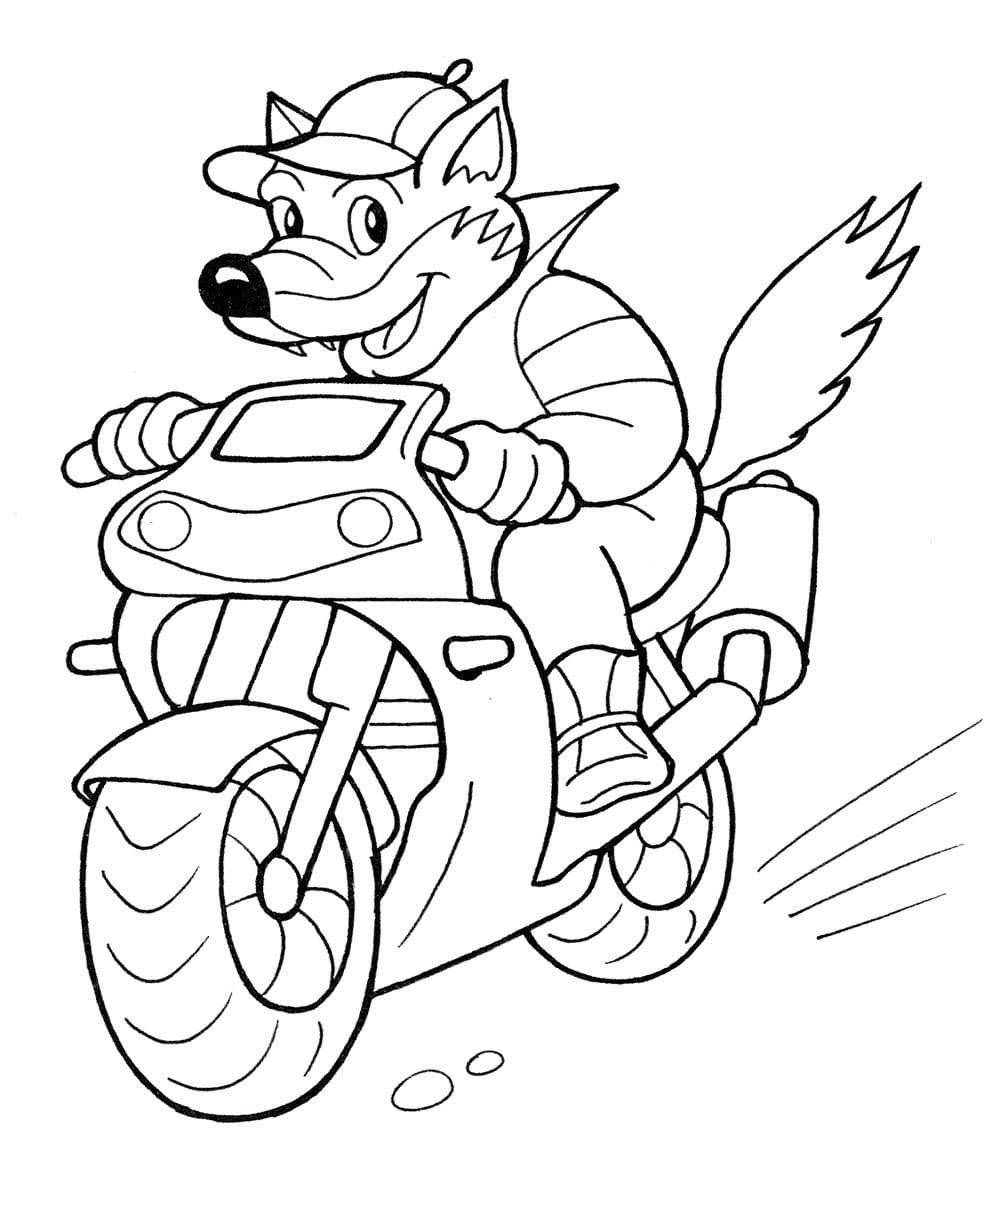 coloring pictures for 7 year olds coloring pages for seven year old boys print them online pictures for olds 7 year coloring